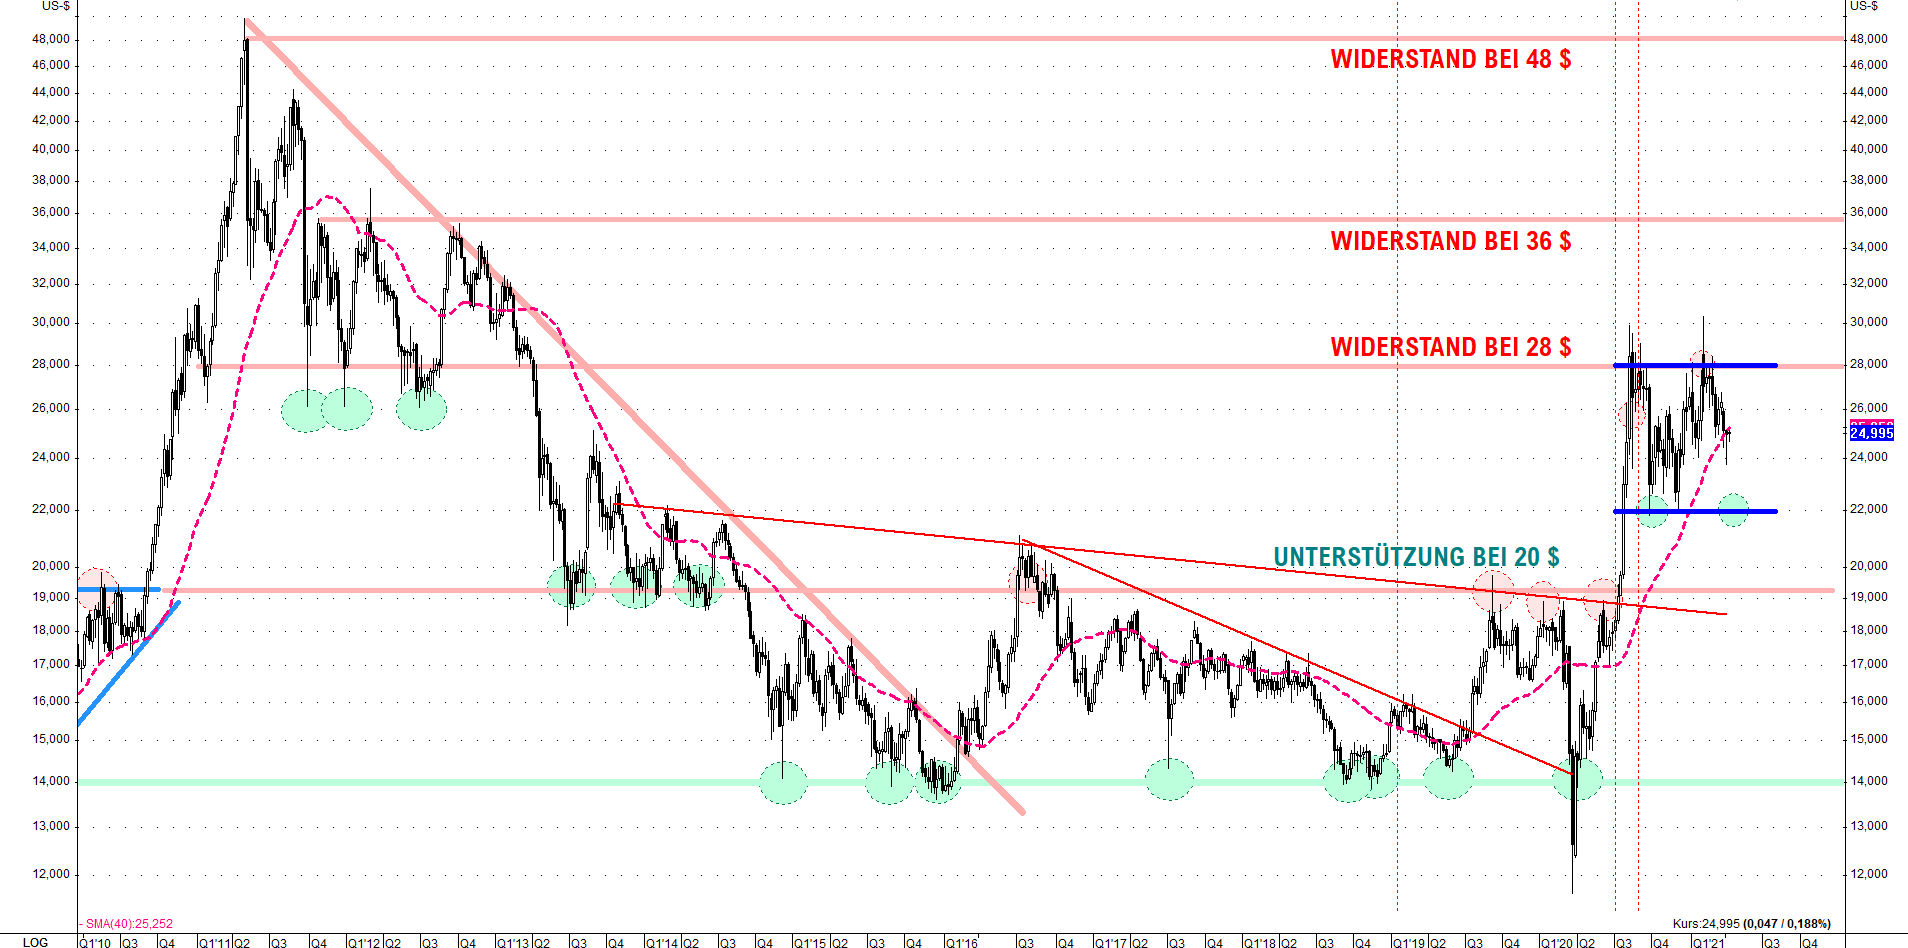 2021.04.06-silber-usd-WEEKLY